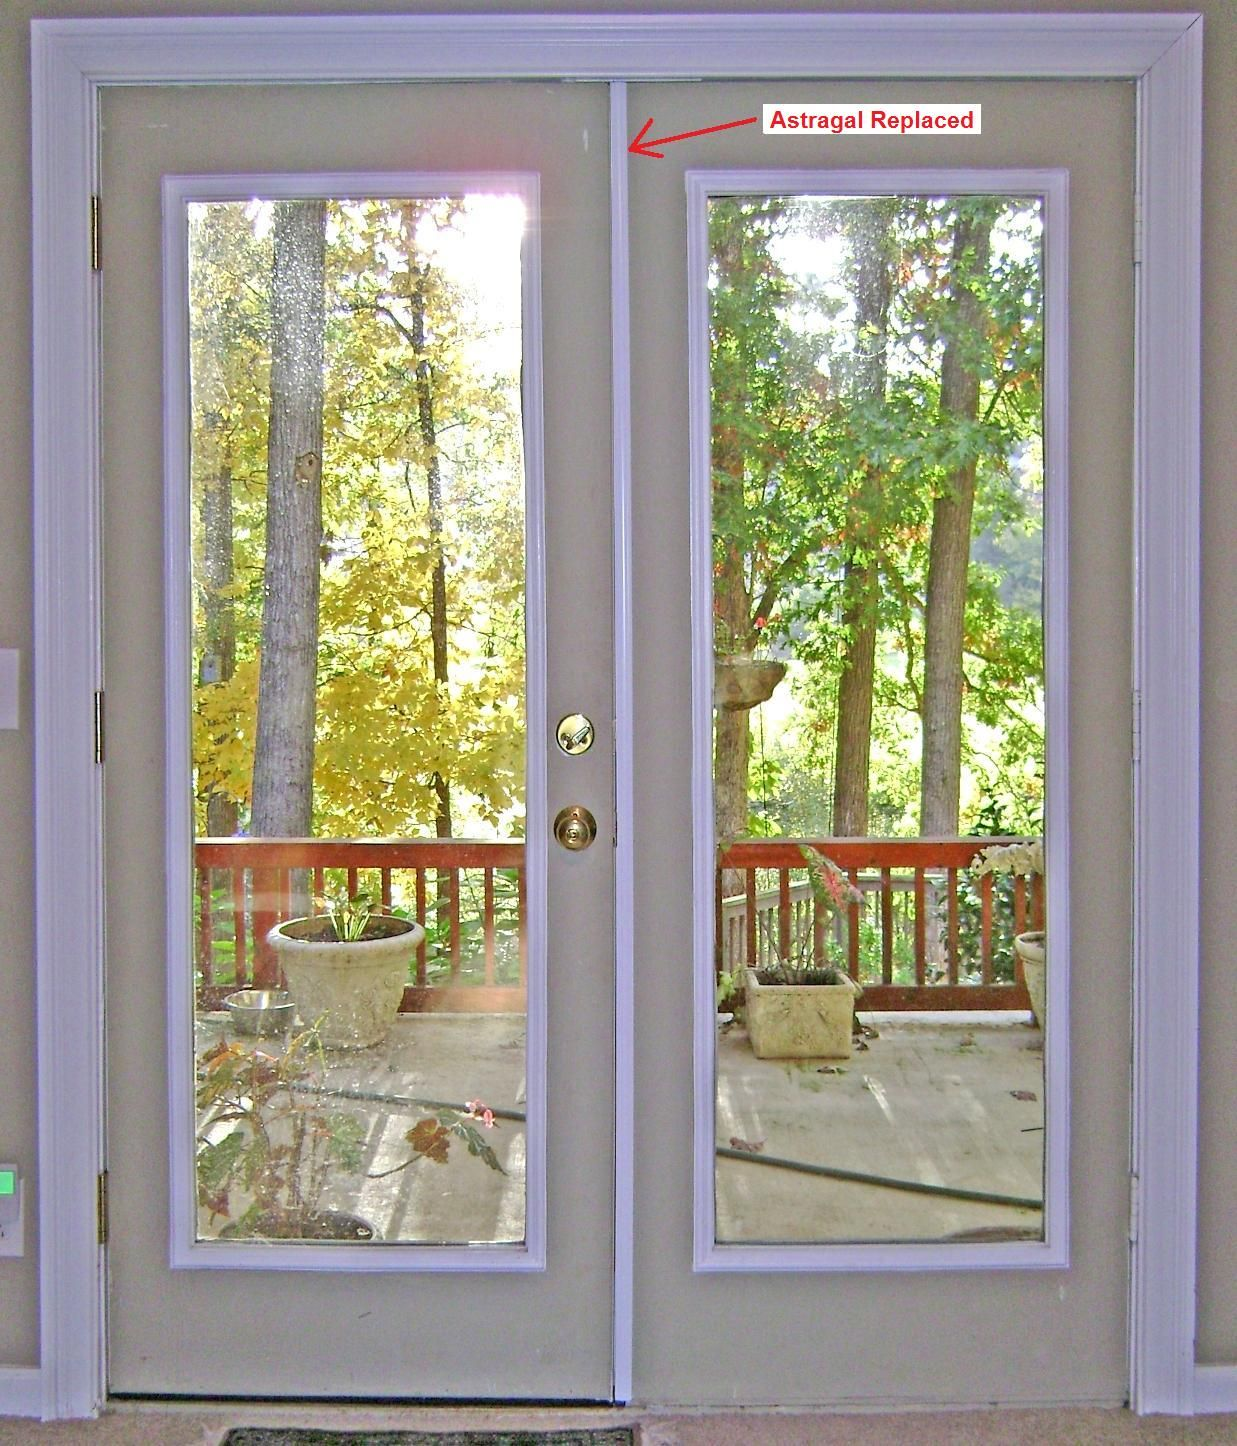 Patio french door astragal replacement part 1 home pinterest patio french door astragal replacement part 1 rubansaba